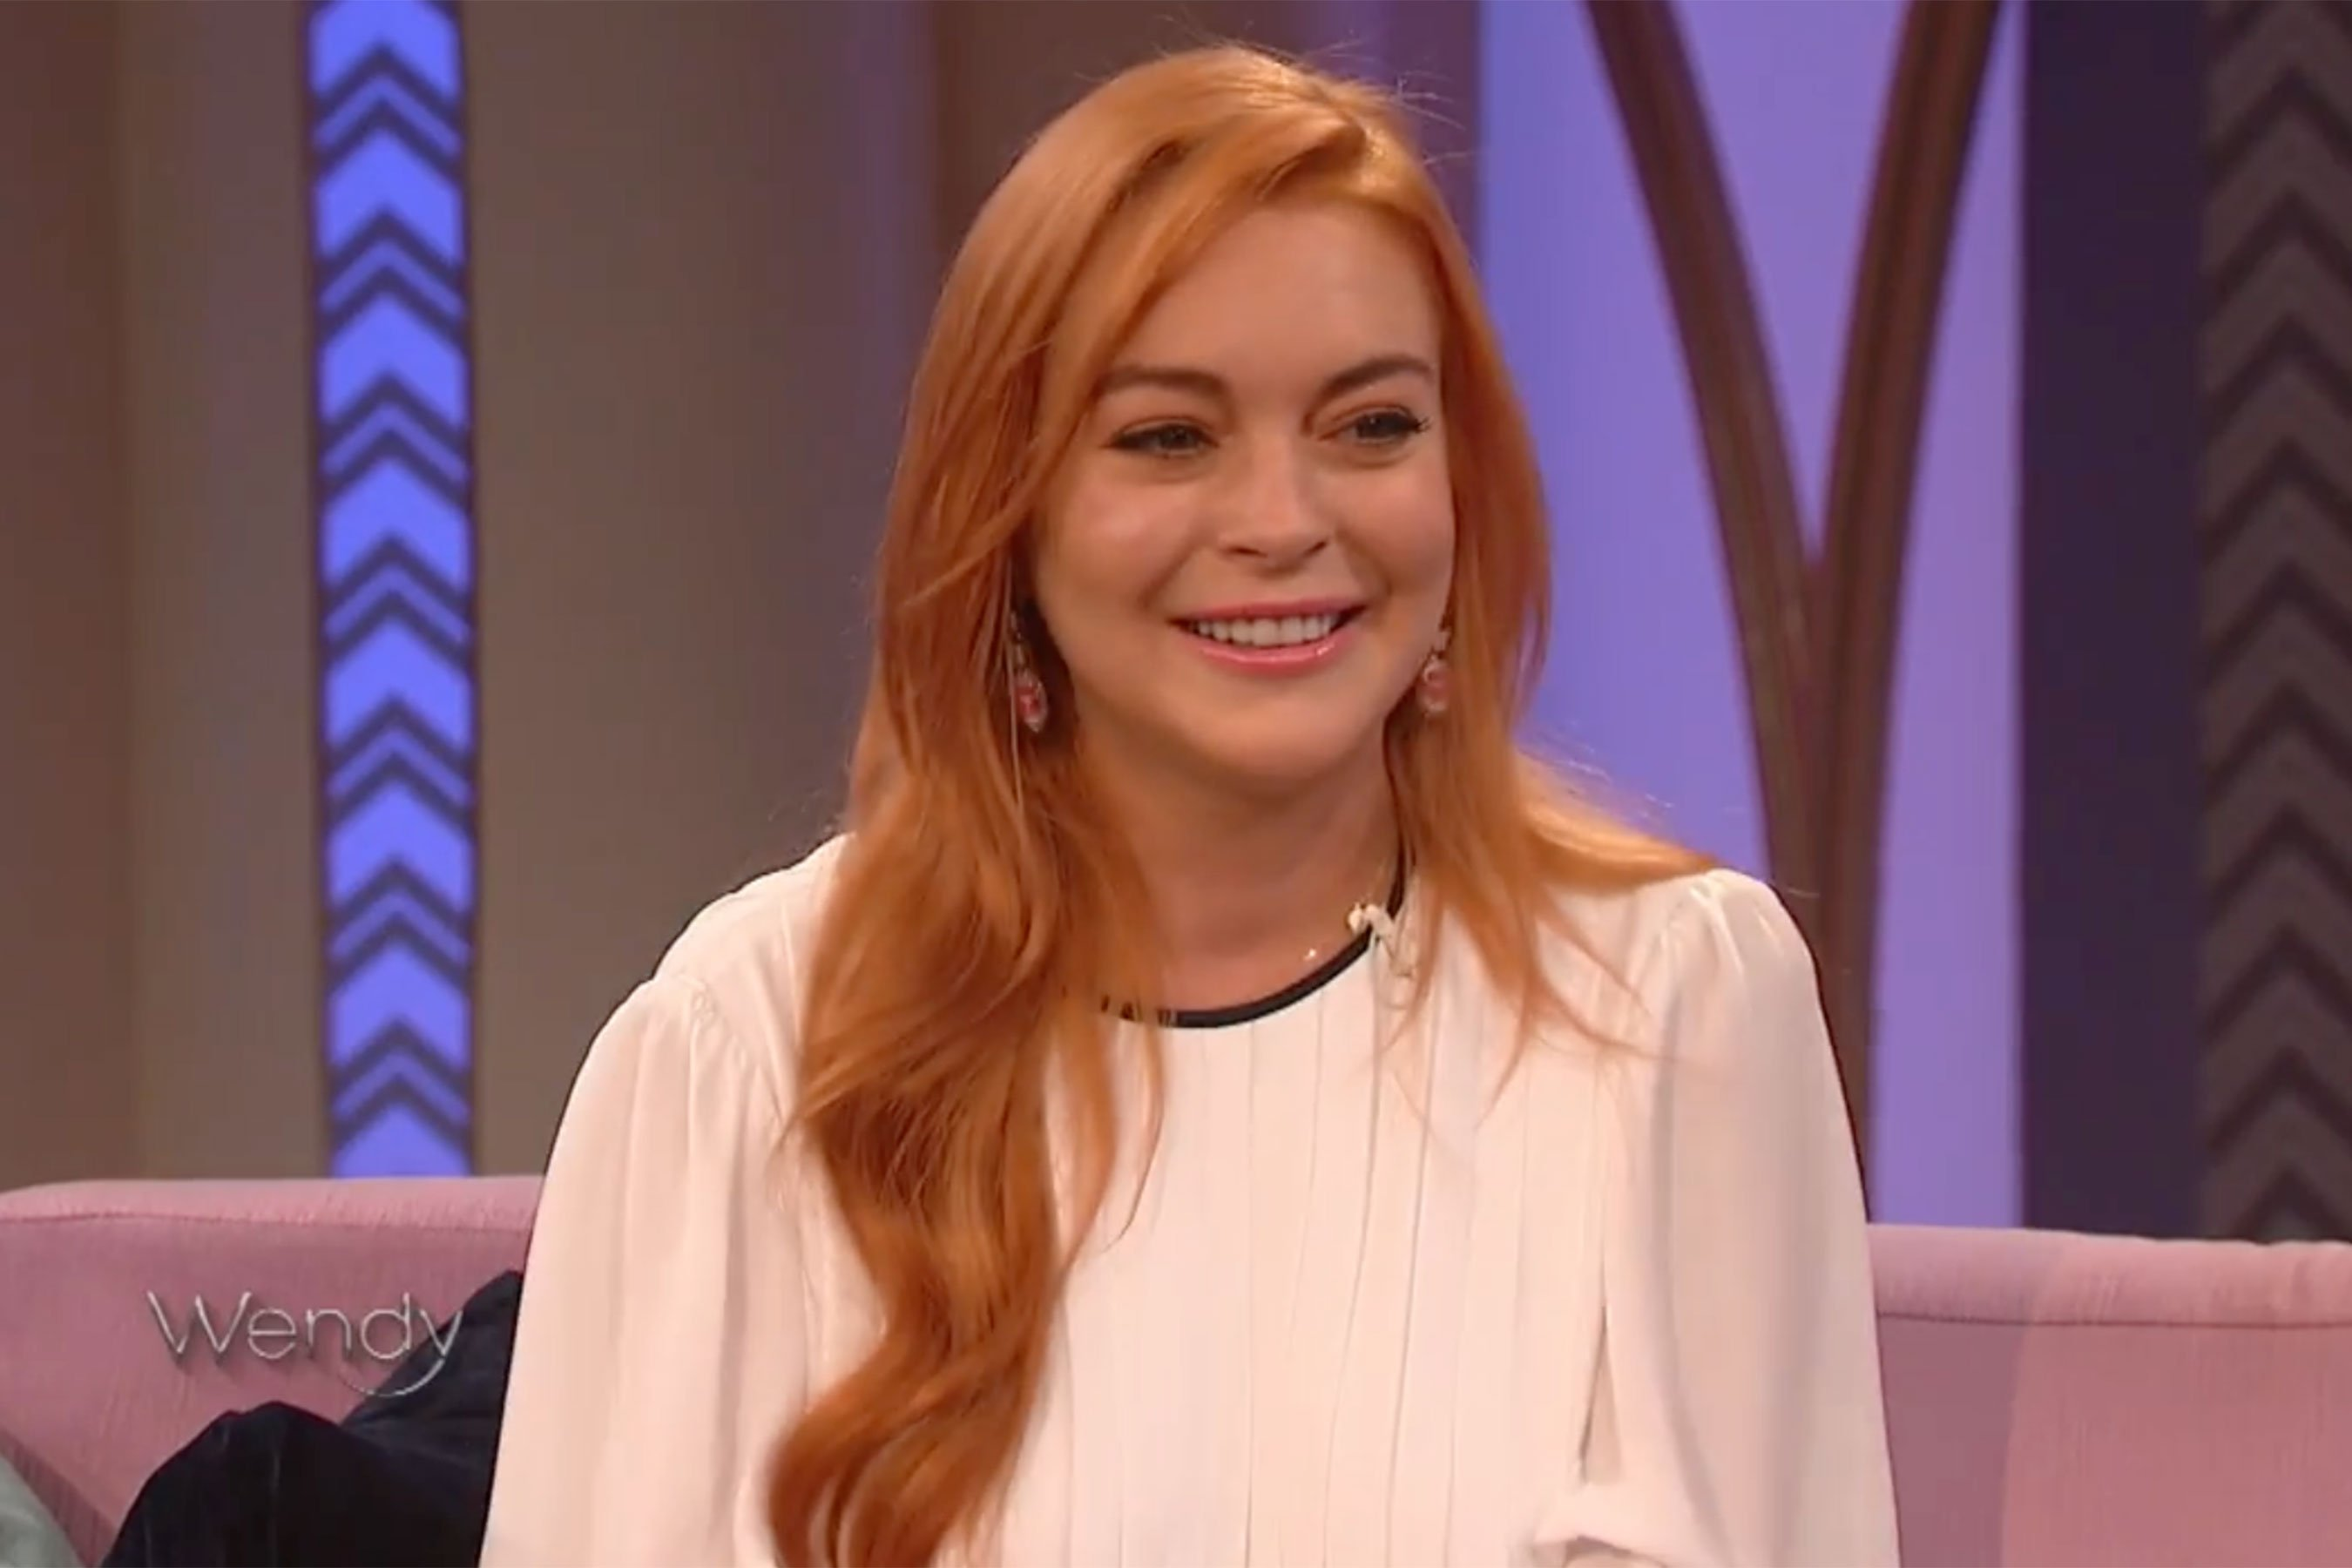 Mean Girls 2: Lindsay Lohan became a bit stalker-ish trying to make sequel